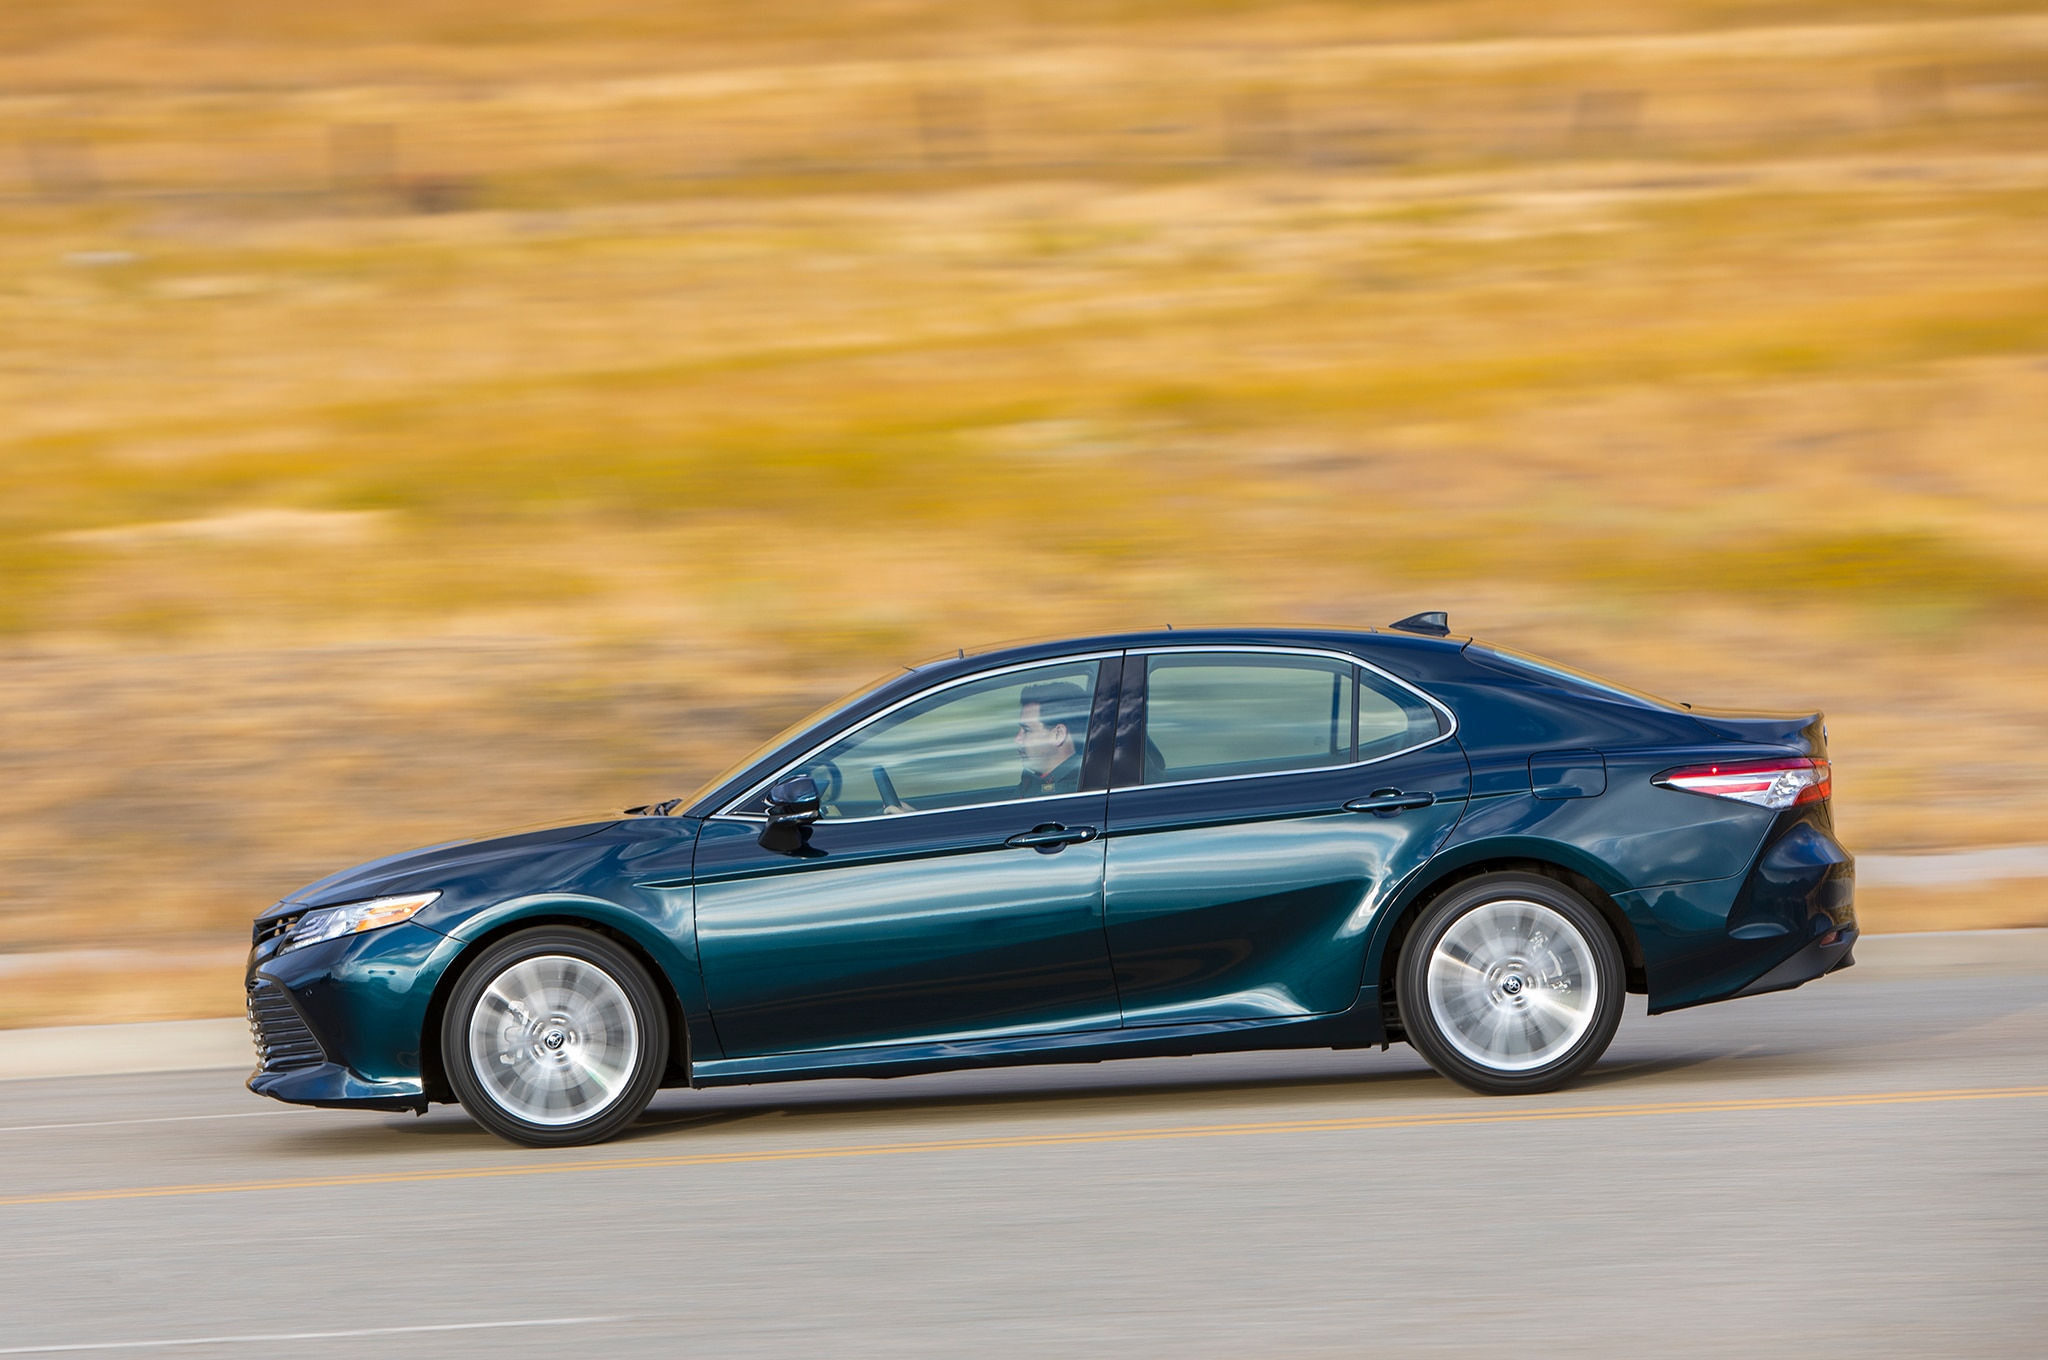 Comparativa: Honda Accord 1.5T 2018 vs. Toyota Camry 2.5 ...